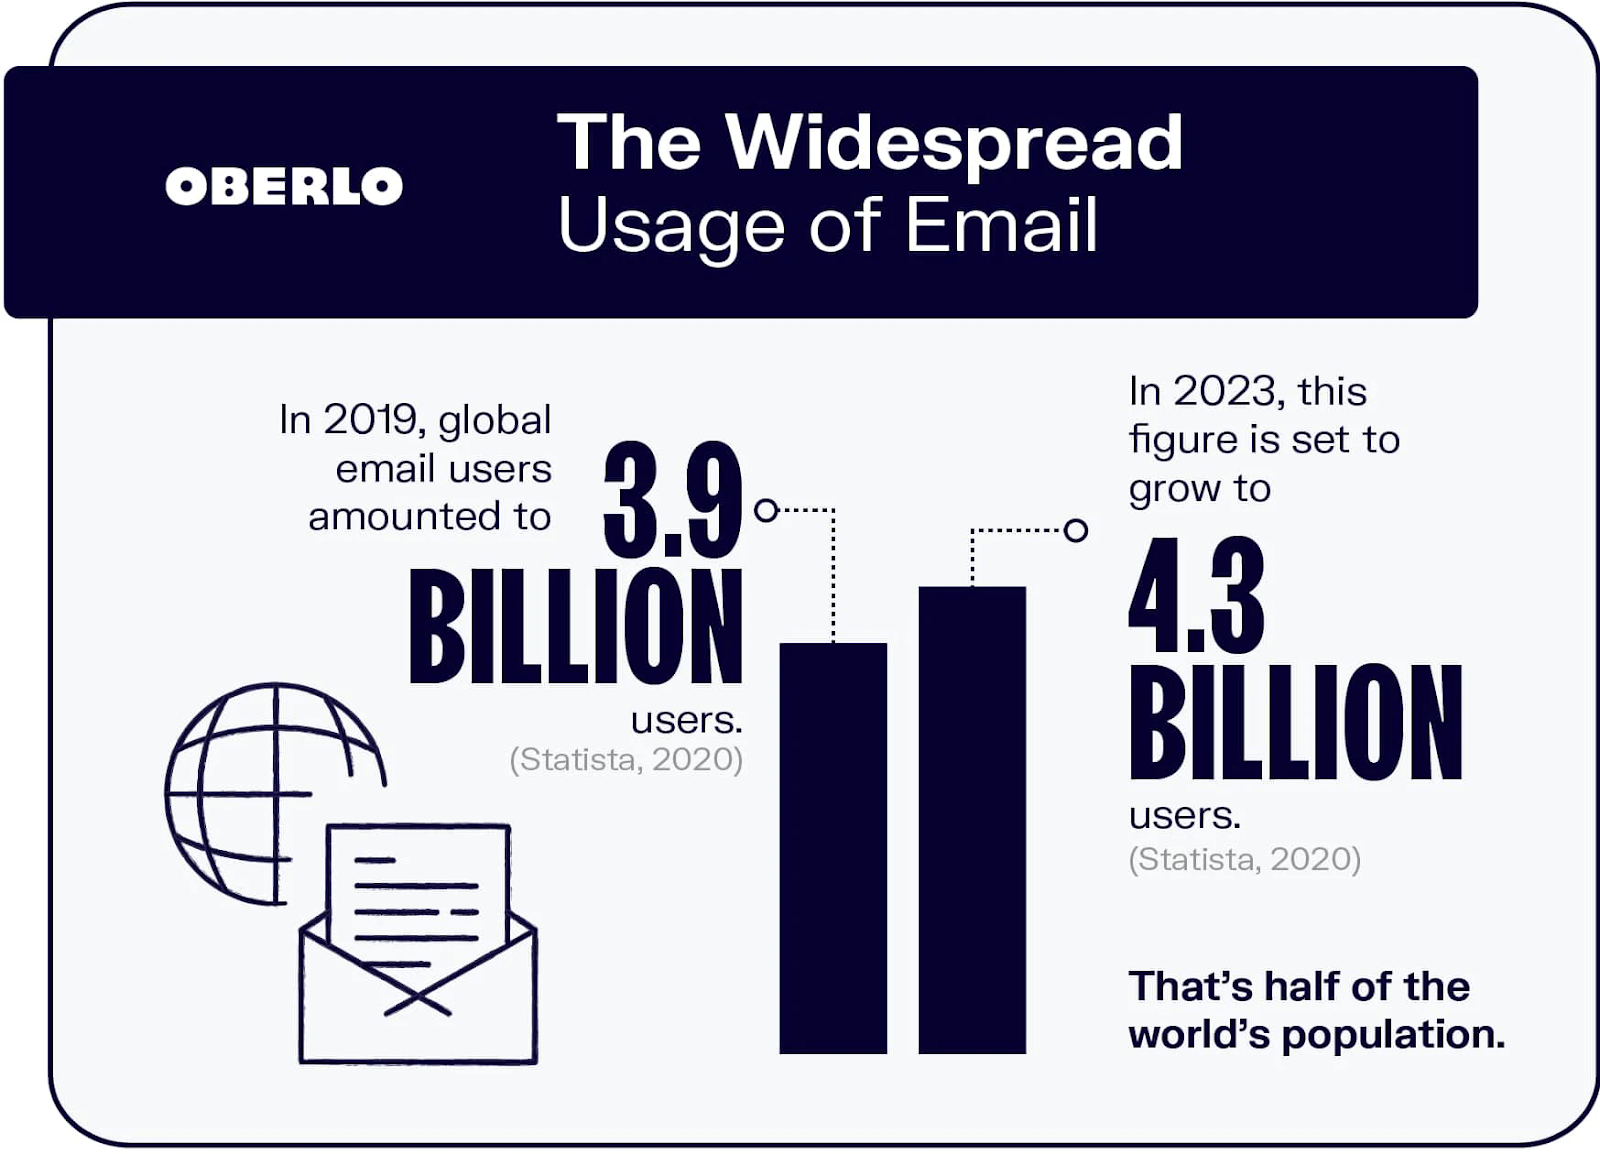 A graph showing the growth of email users from 3.9 billion in 2019 to 4.3 billion in 2023.